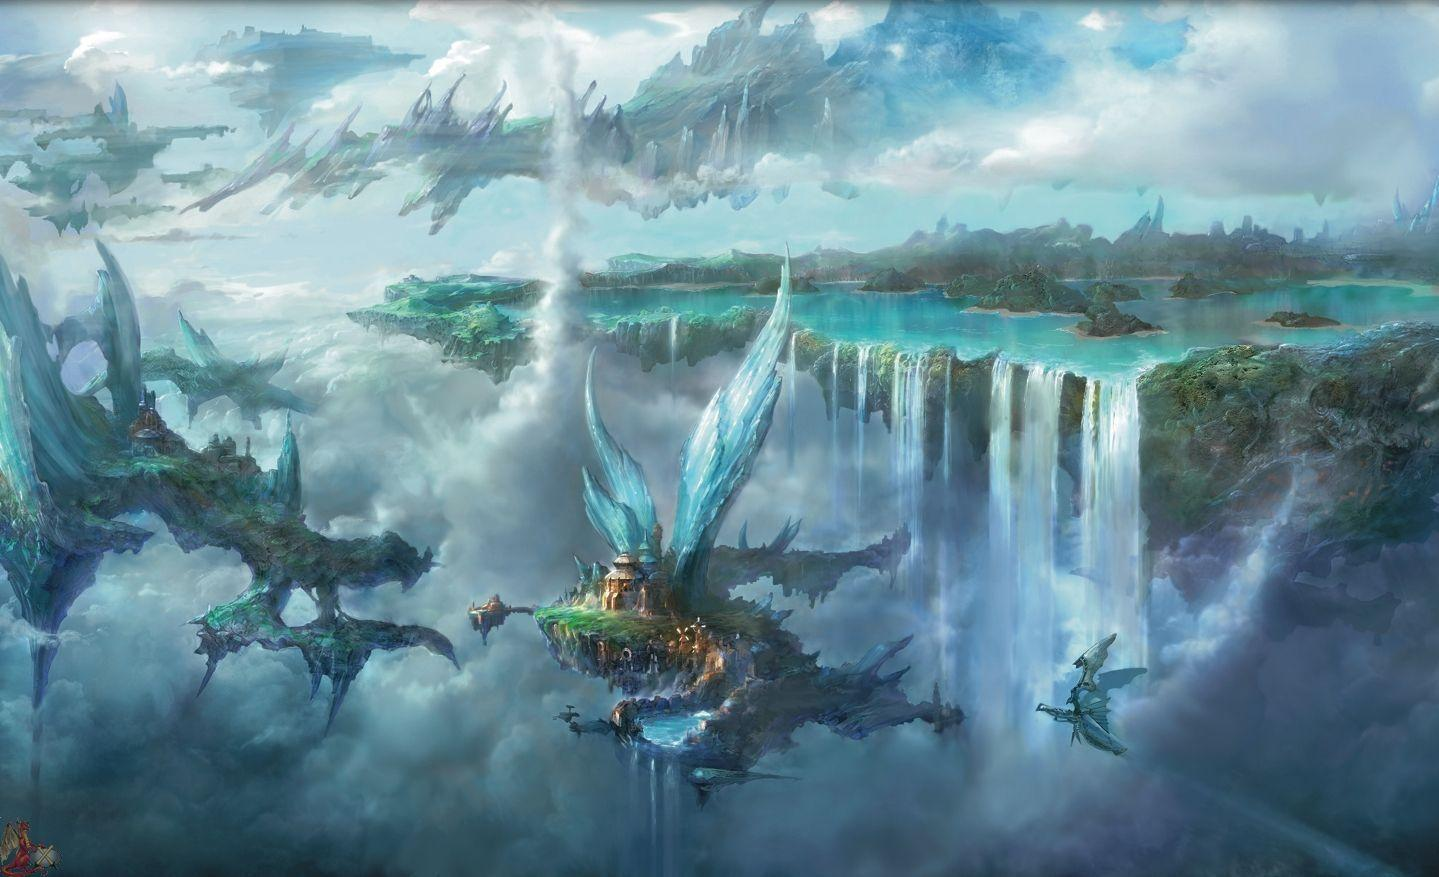 Free Download Hd Final Fantasy Wallpapers 1439x877 For Your